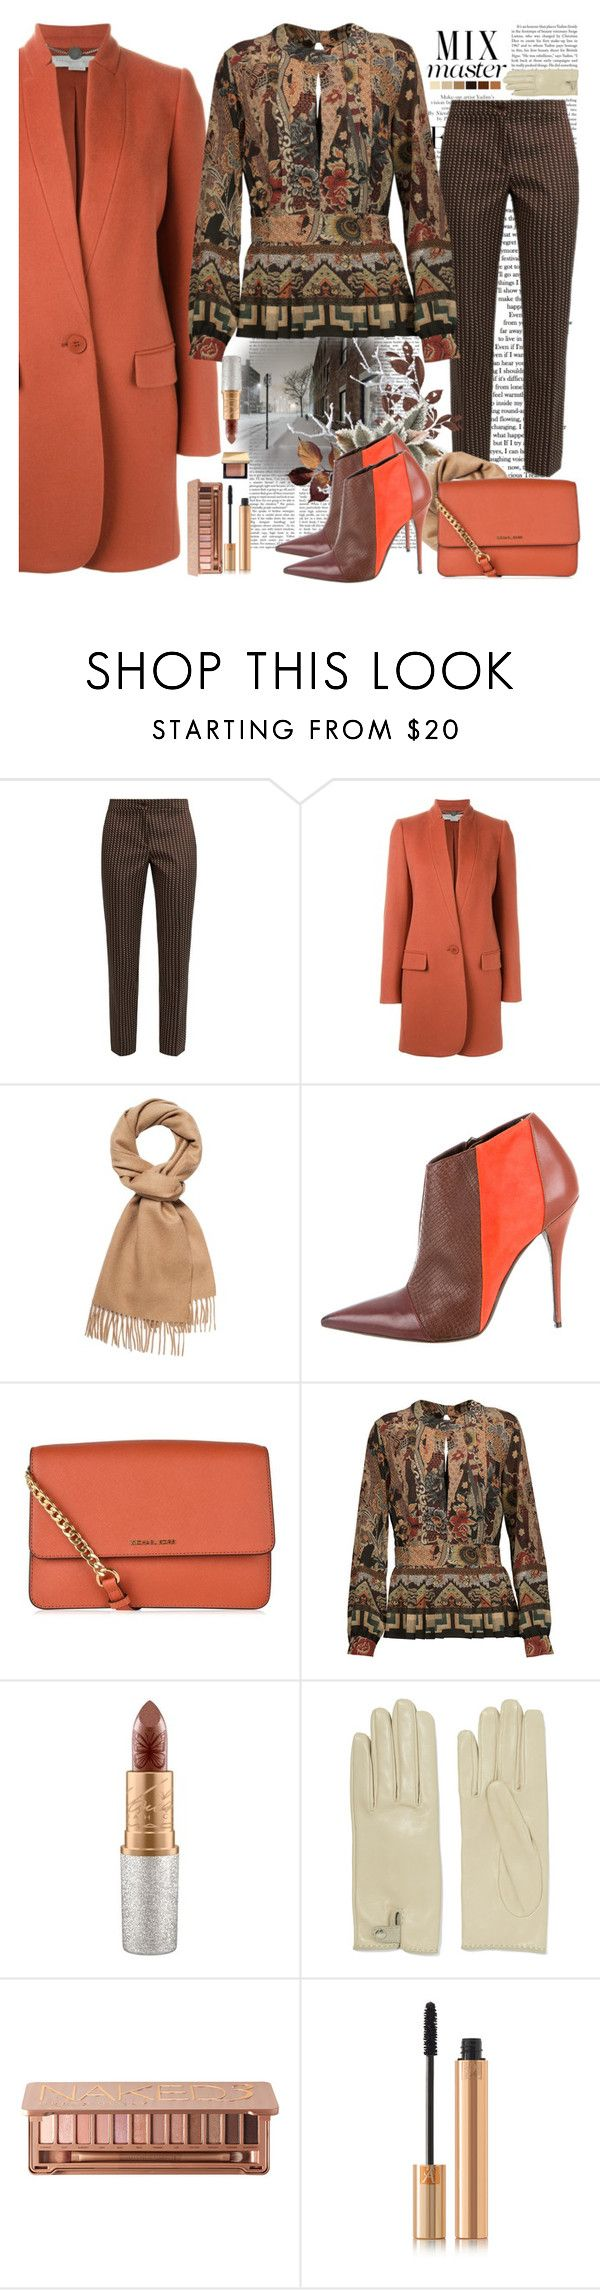 """""""Etro - Pleated Printed Silk Crepe De Chine Peplum Blouse"""" by the-wardrobe-of-wishes on Polyvore featuring moda, Libertine, Etro, STELLA McCARTNEY, Narciso Rodriguez, MICHAEL Michael Kors, MAC Cosmetics, Seed Design, Causse e Urban Decay"""